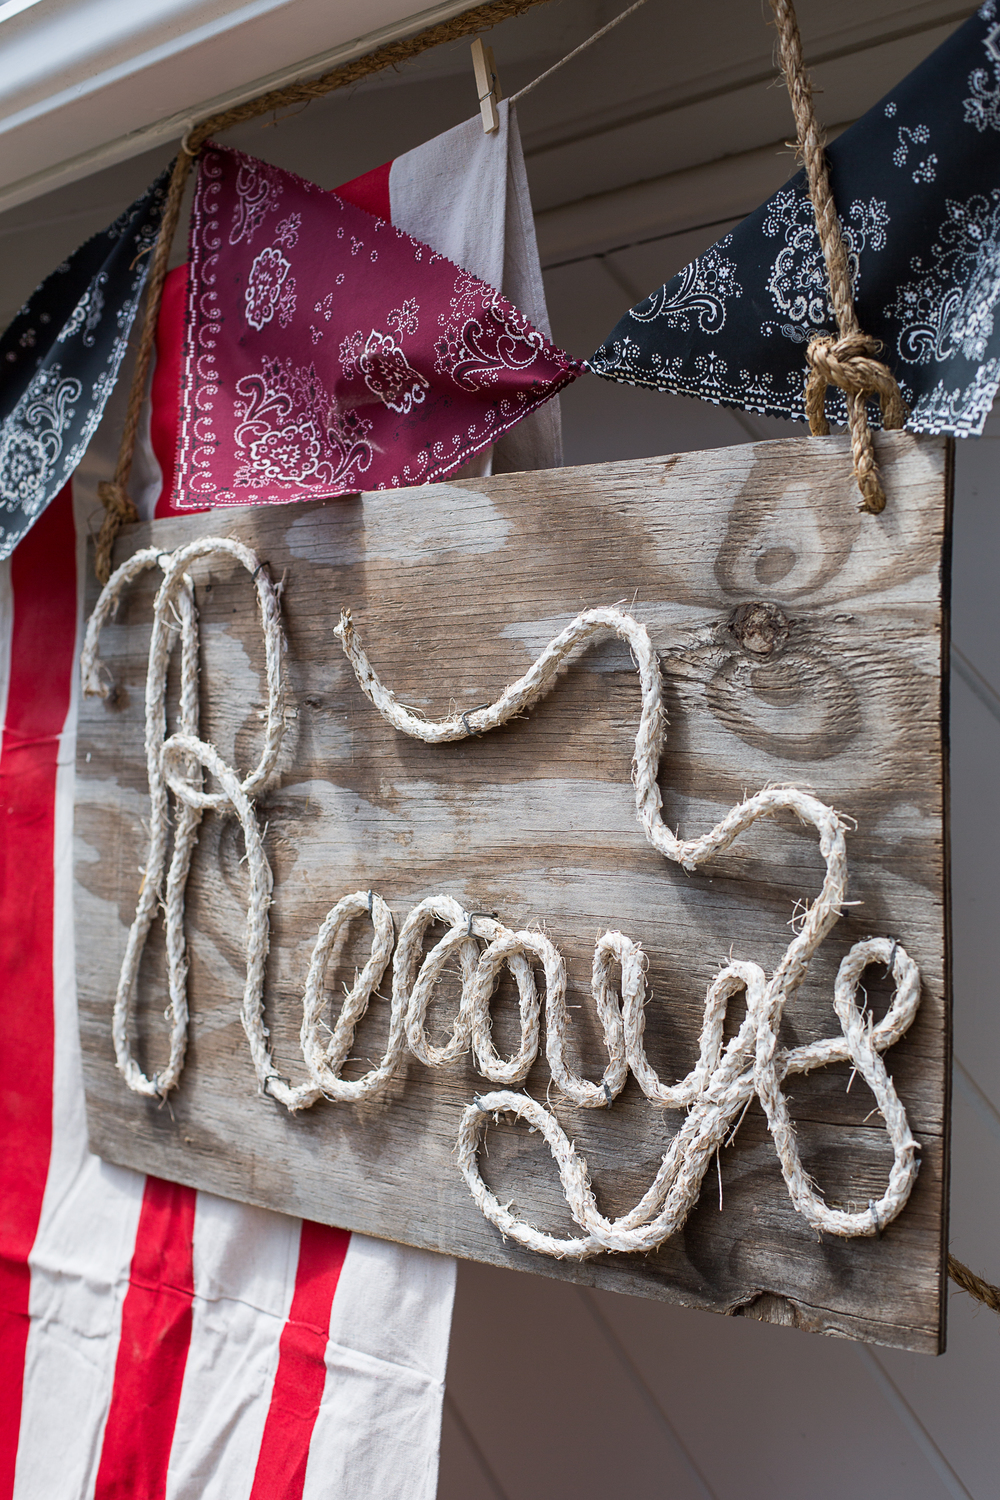 A DIY rope sign (so simple!).  Follow the instructions available at Love Grows Wild (http://lovegrowswild.com/2013/08/how-to-make-rope-letters/).  I used hemp rope because that is what I had laying around.